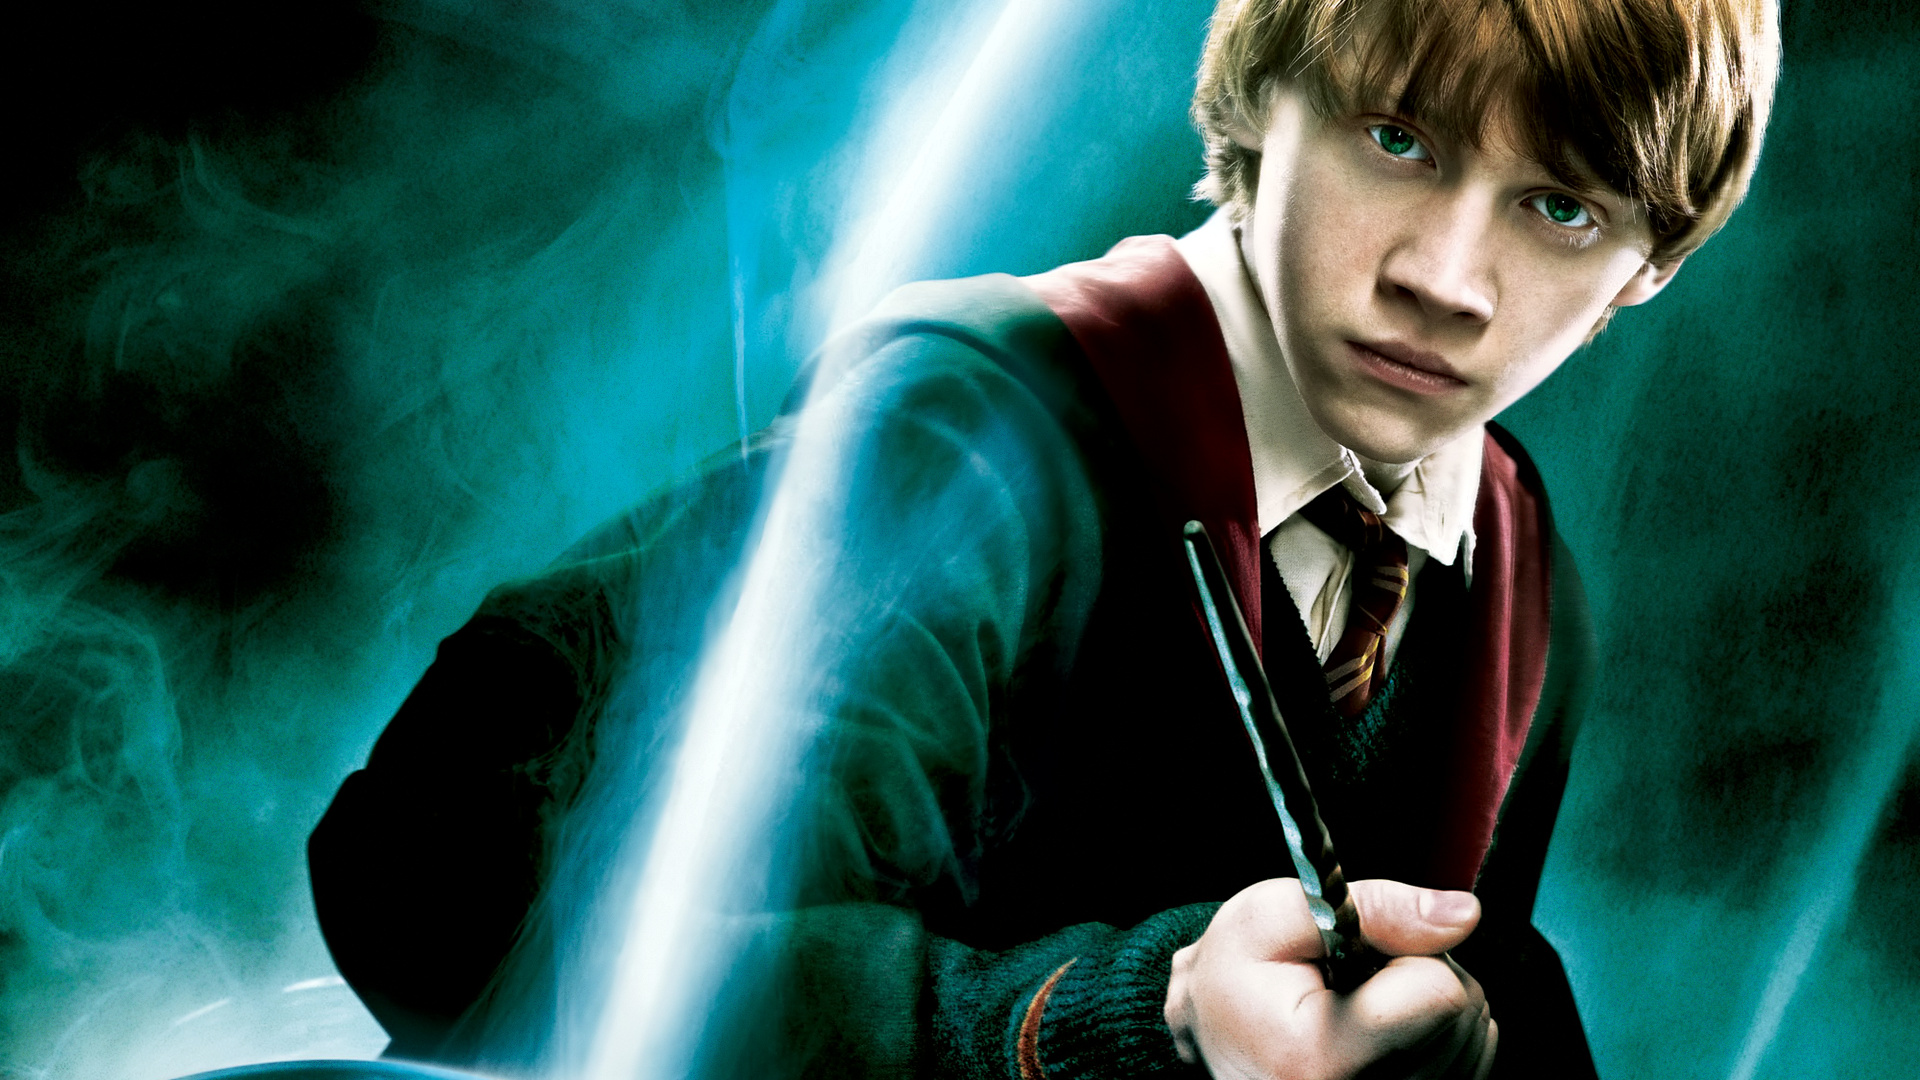 harry potter and the order of the phoenix movie download hd